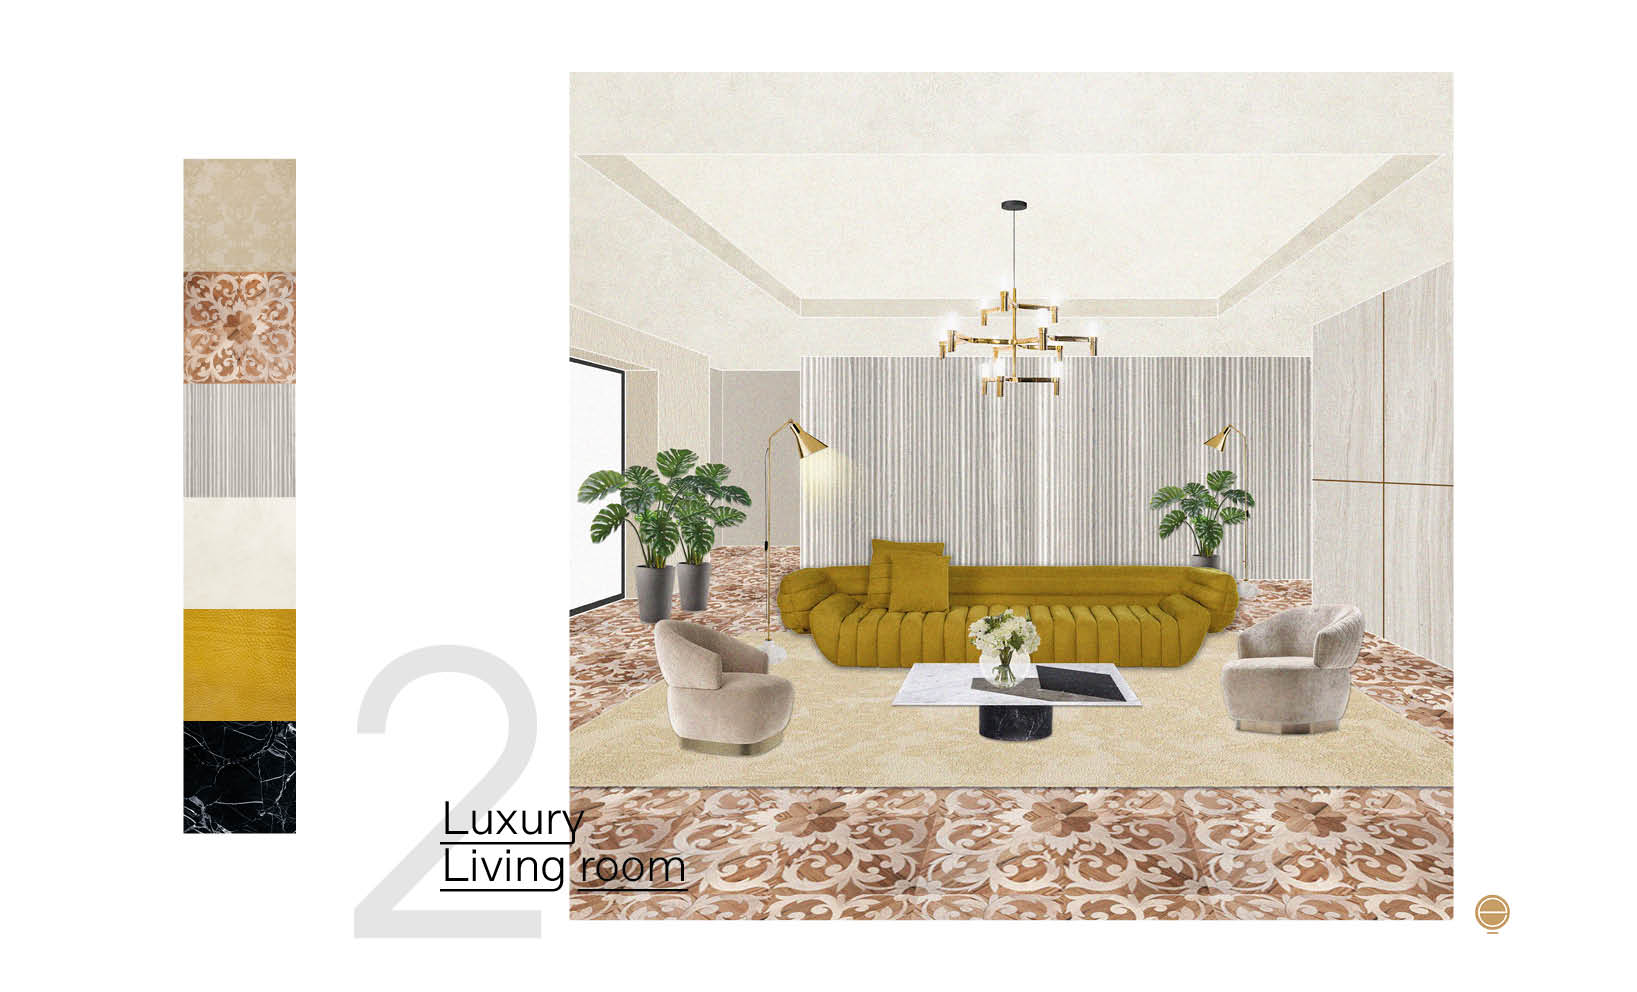 luxury living room furniture composition designed by Esperiri interior designers